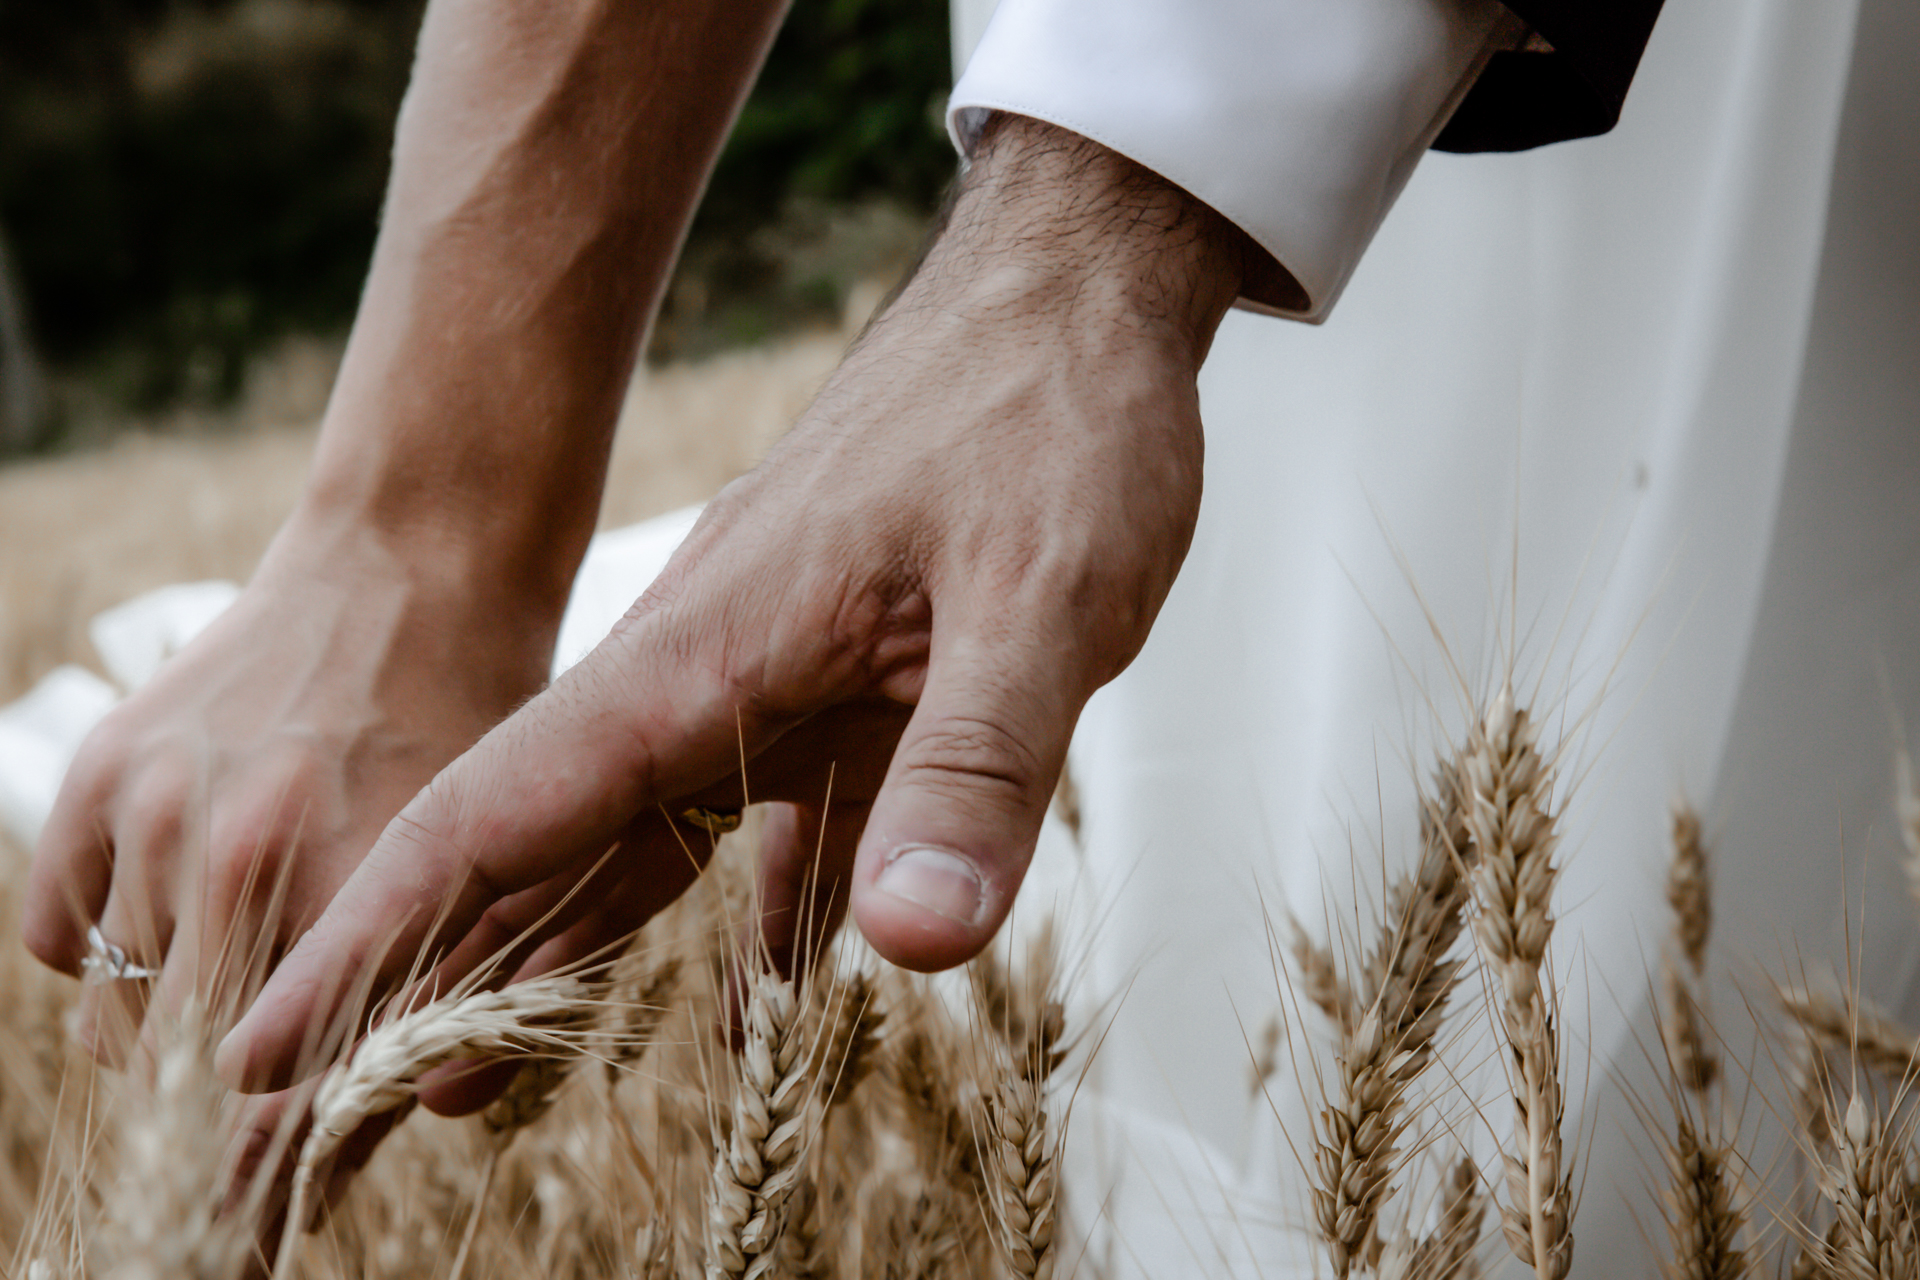 San Demetrio Wheat Fields Detail Pic, Cesena | In between the ceremony and the reception, the couple took time to stroll